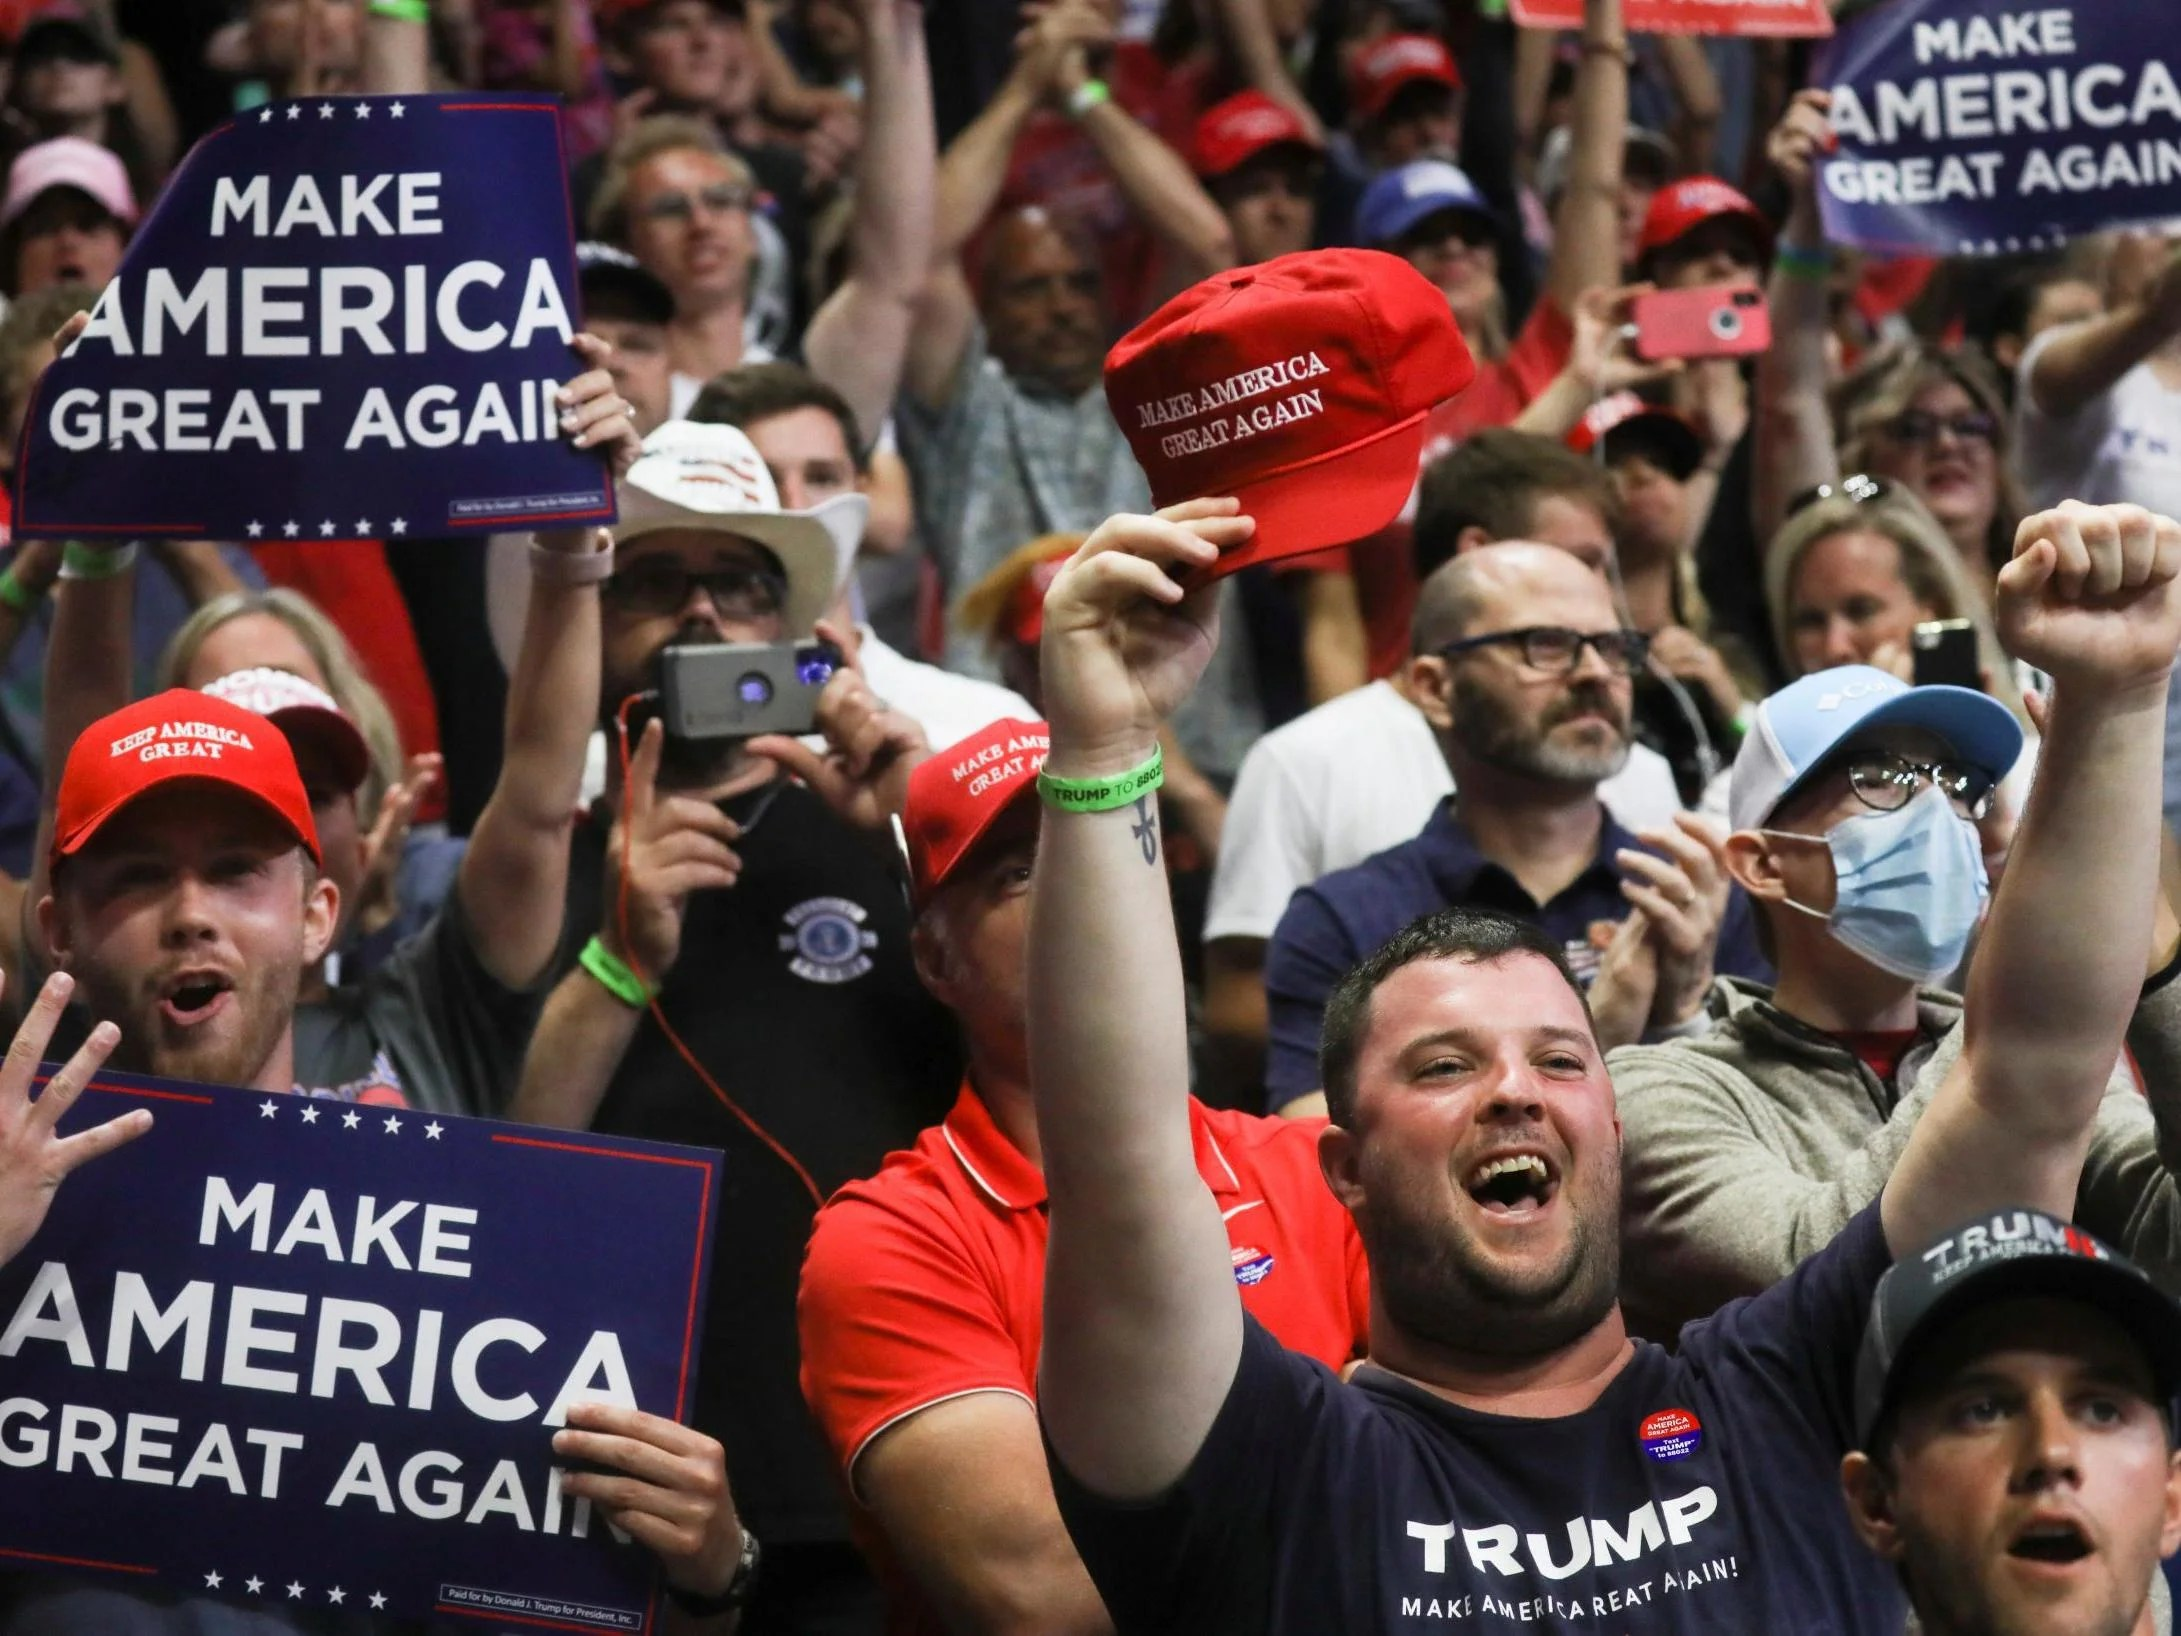 Everyone at Trump's Republican Convention to be tested daily for coronavirus, organisers announce 4